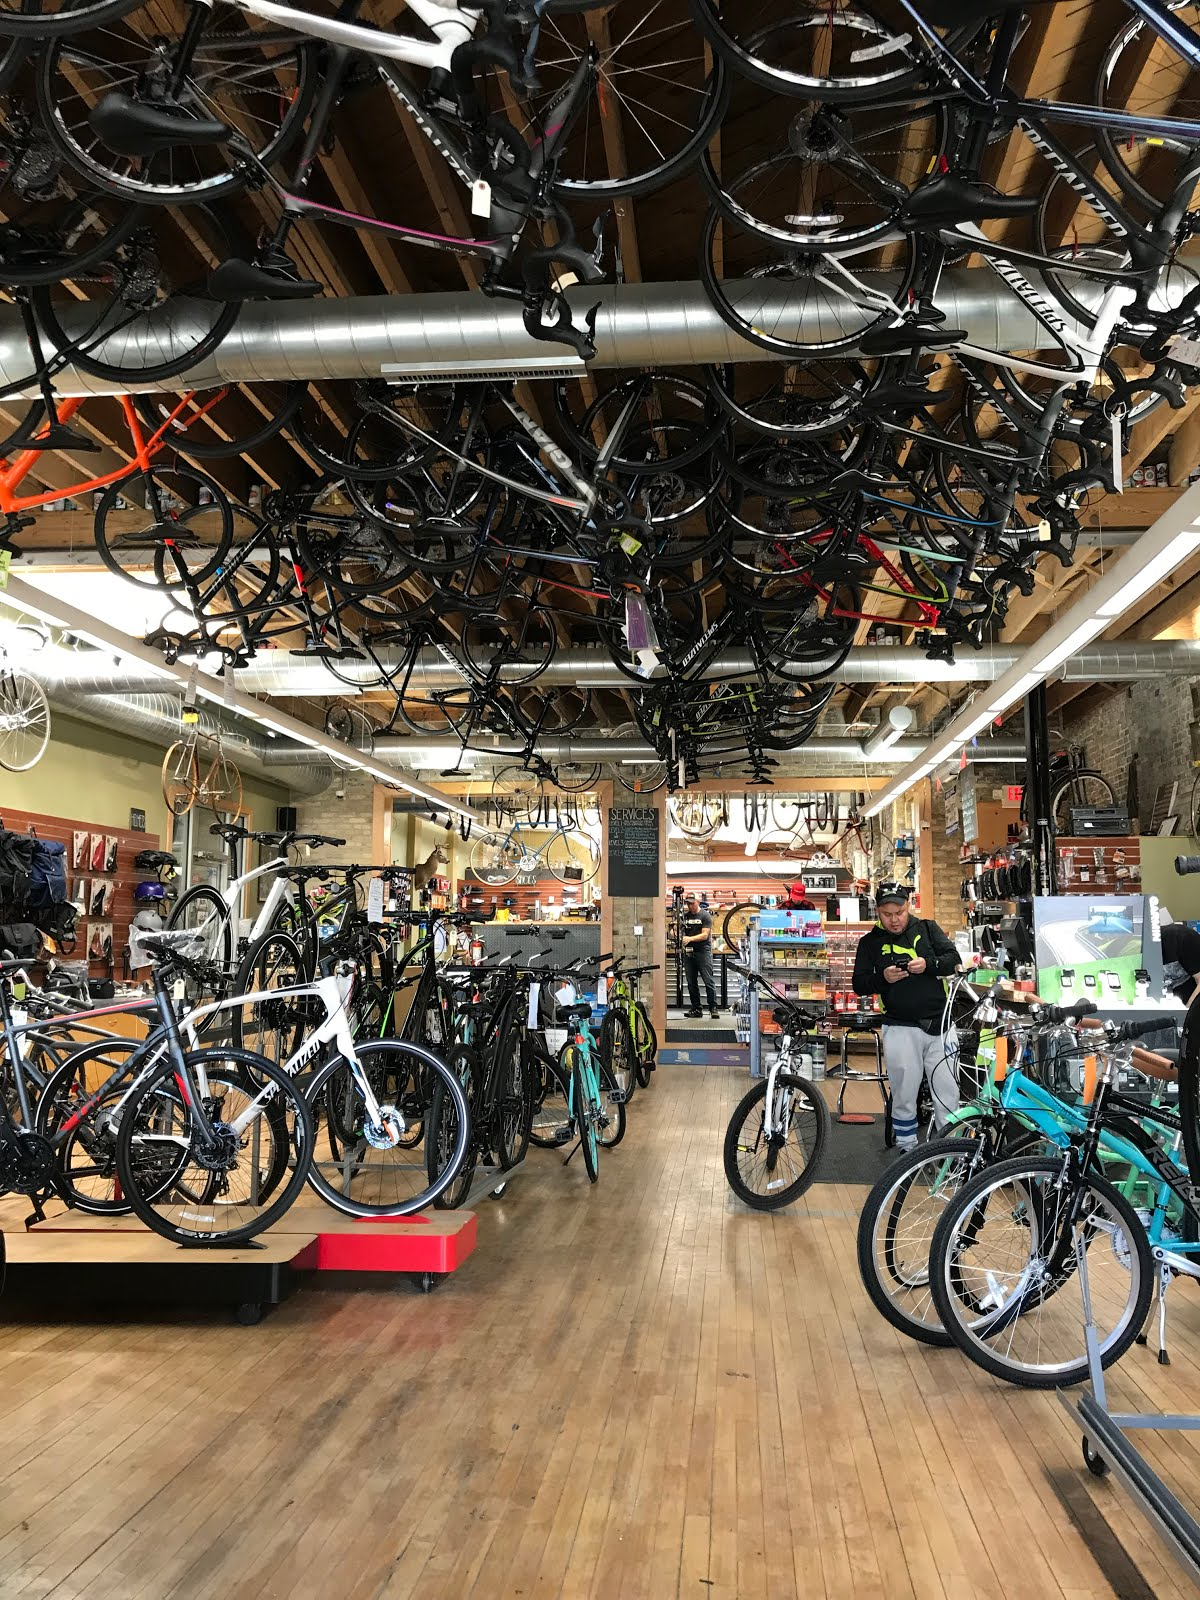 A Bike Store Just A Little Bit Cranky The Bike Store Experience